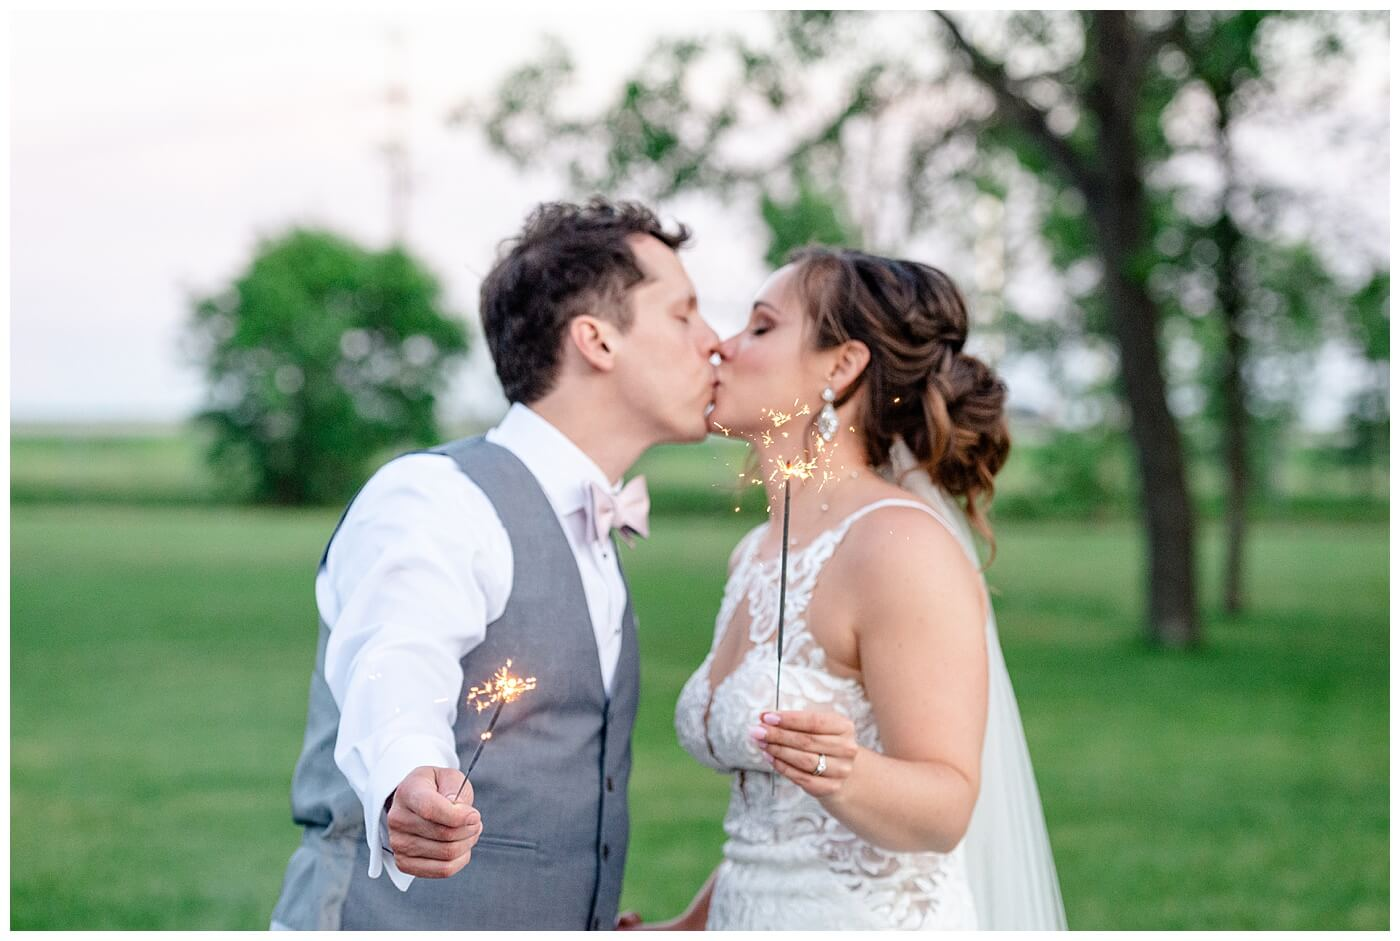 Regina Wedding Photographer- Adam - Sarah - COVID Wedding - Backyard Wedding - Canada Day wedding - Celebrating Canada Day Wedding with sparklers